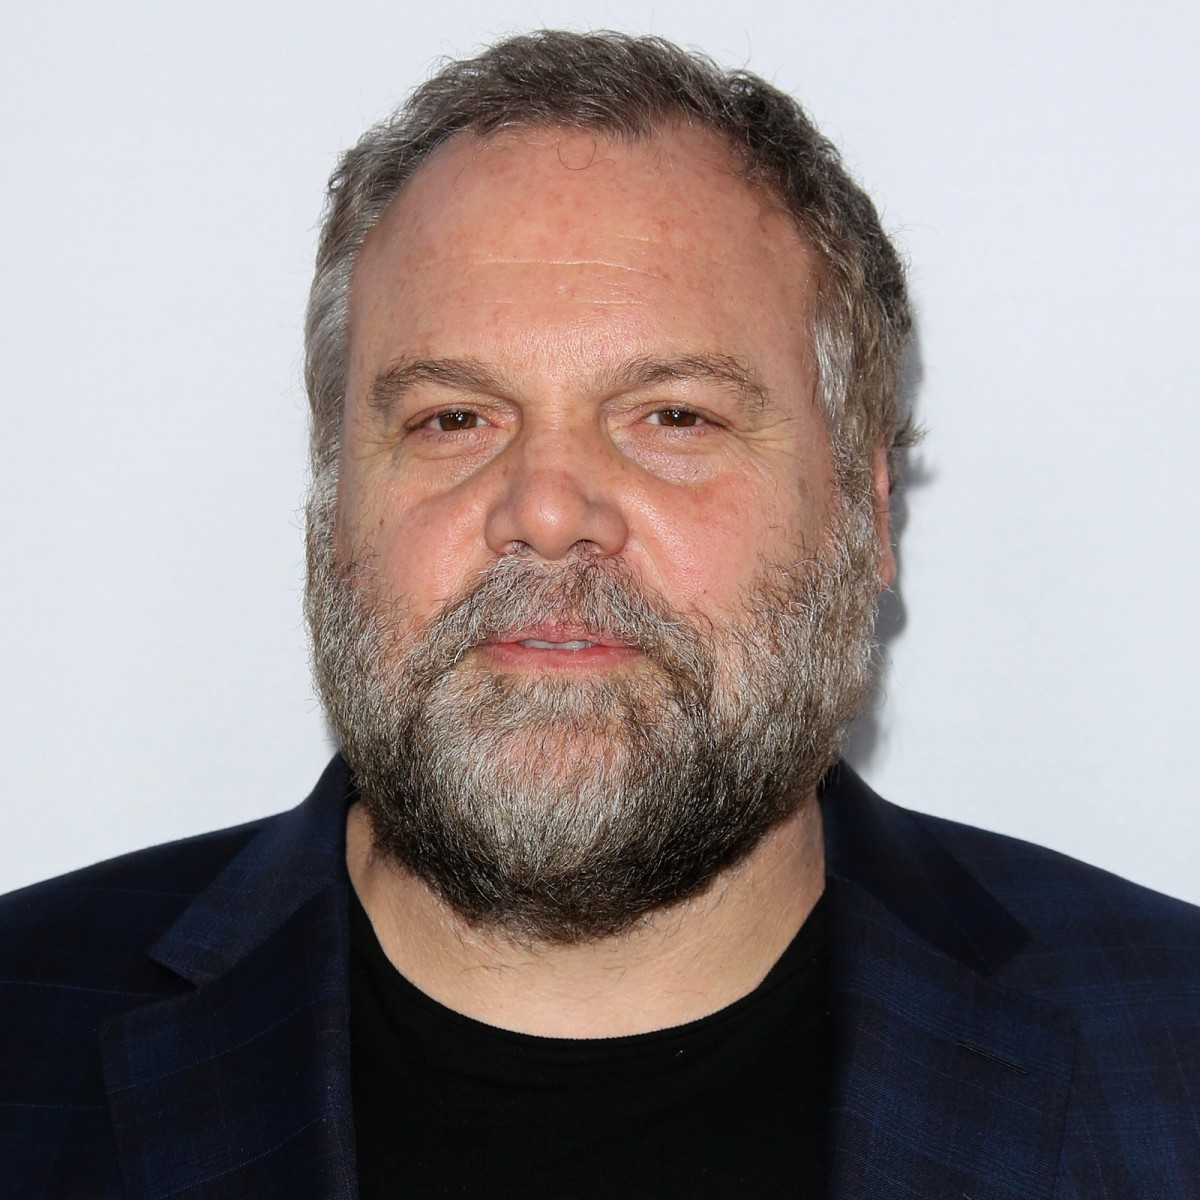 Vincent D'Onofrio photo via Getty Images